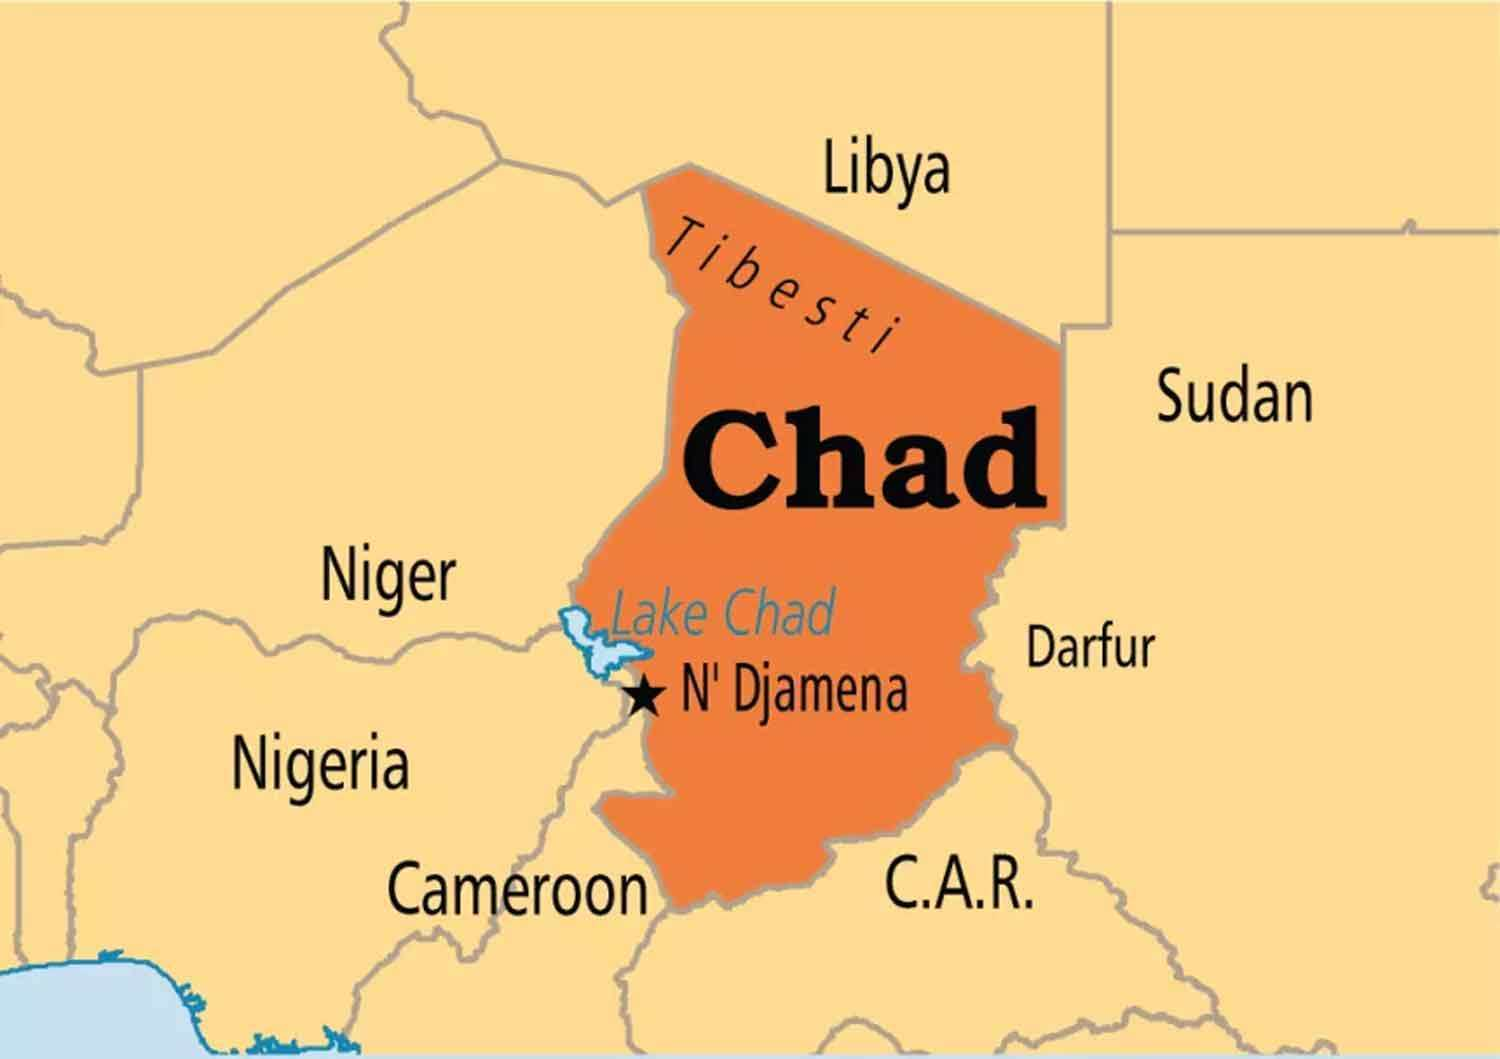 22 people killed in ethnic violence in southern Chad